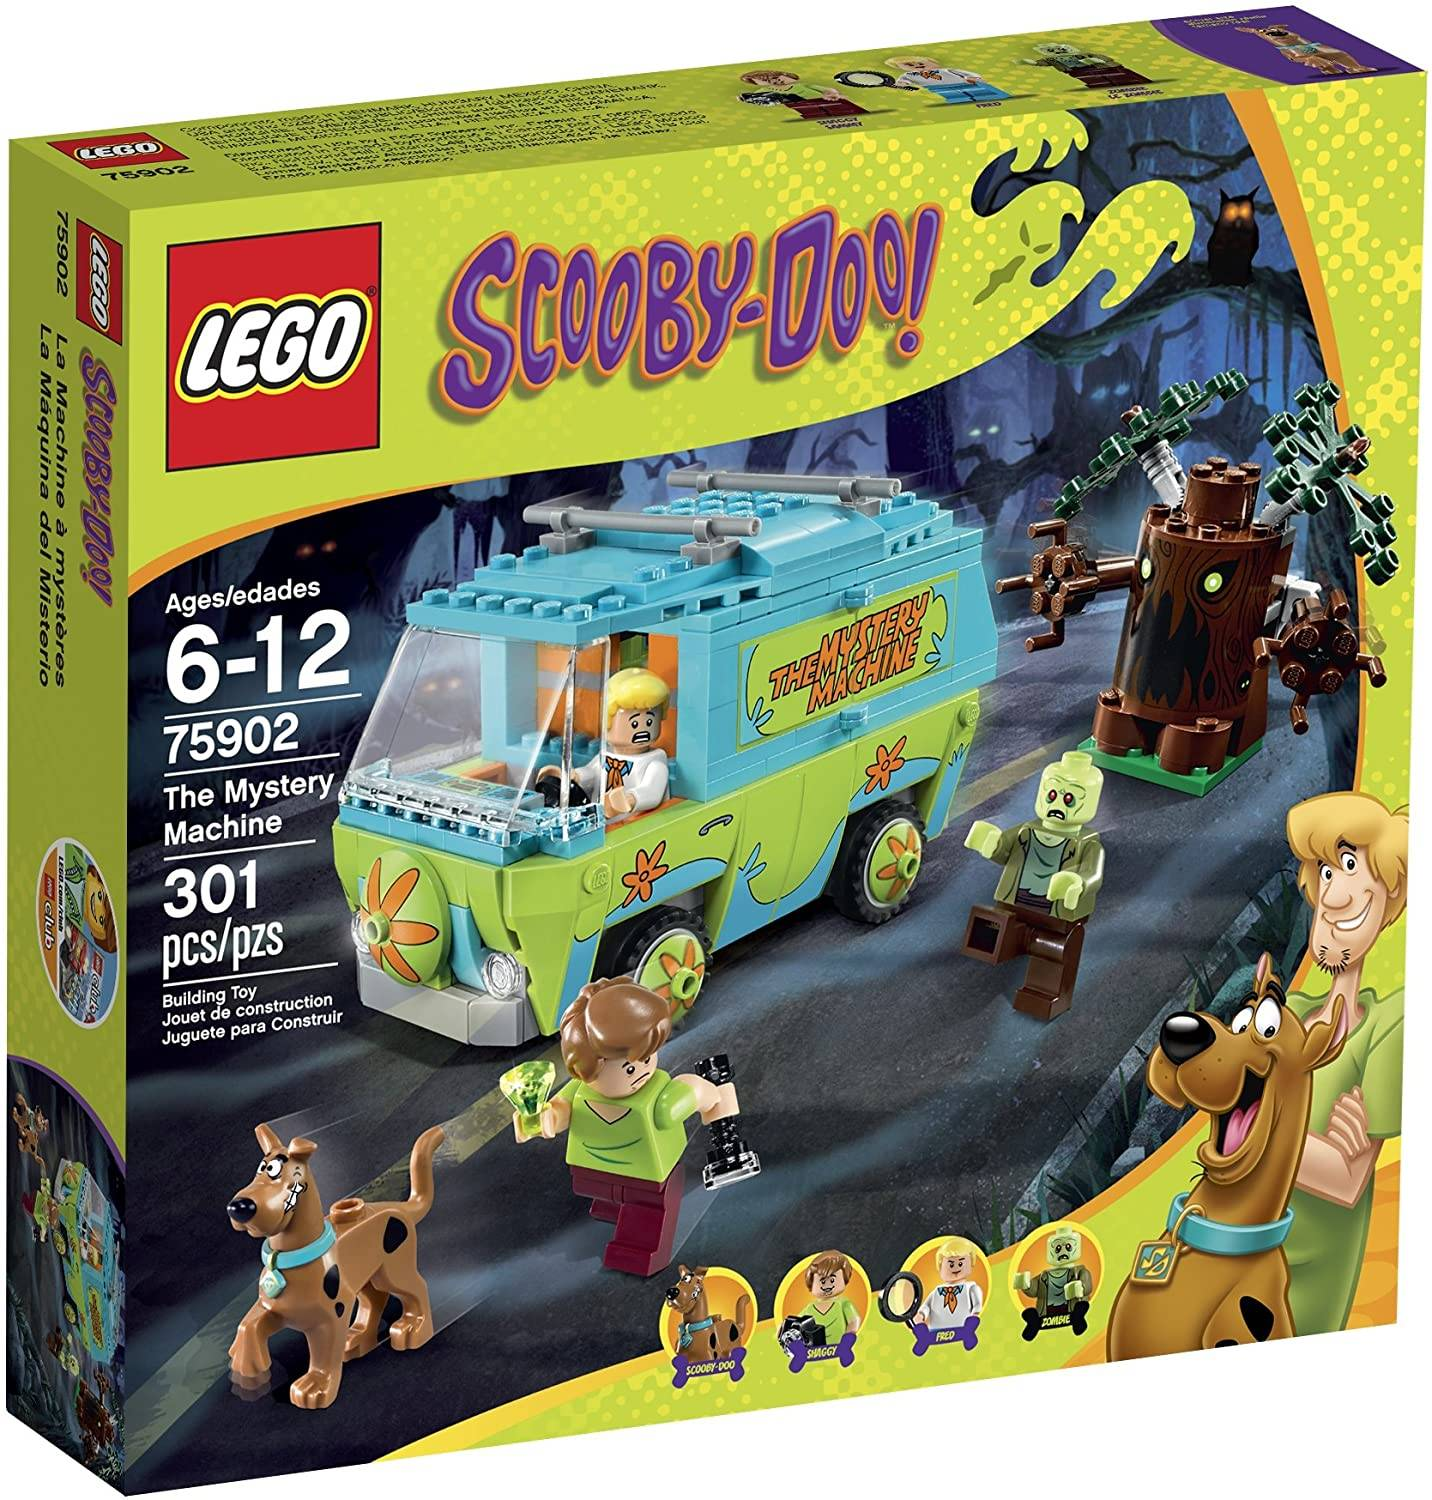 Scooby-Doo The Mystery Machine Building Kit